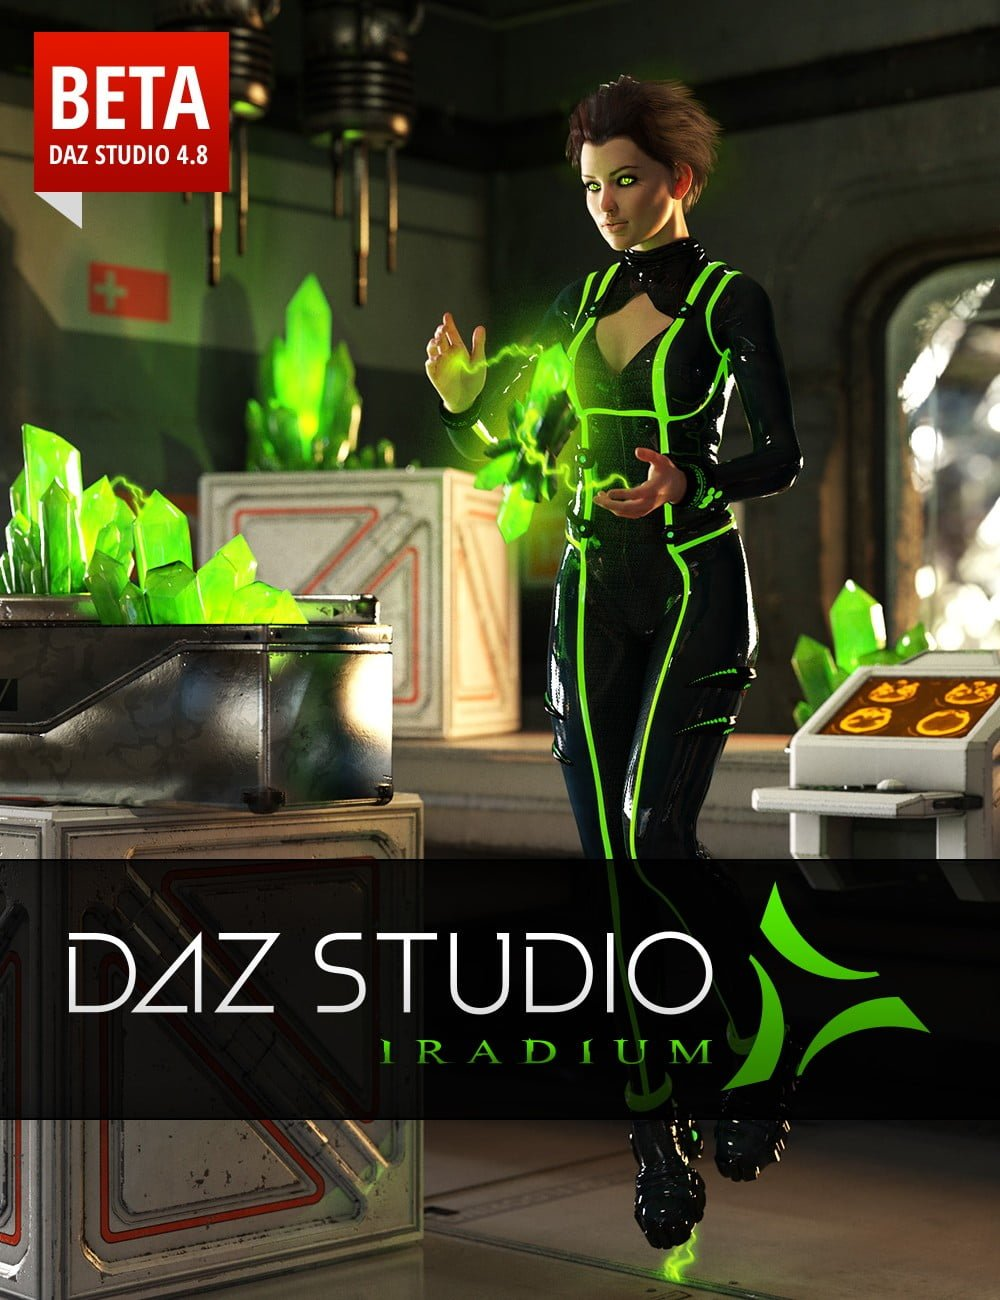 3D and DAZ Studio Addict - DAZ Studio and Poser site